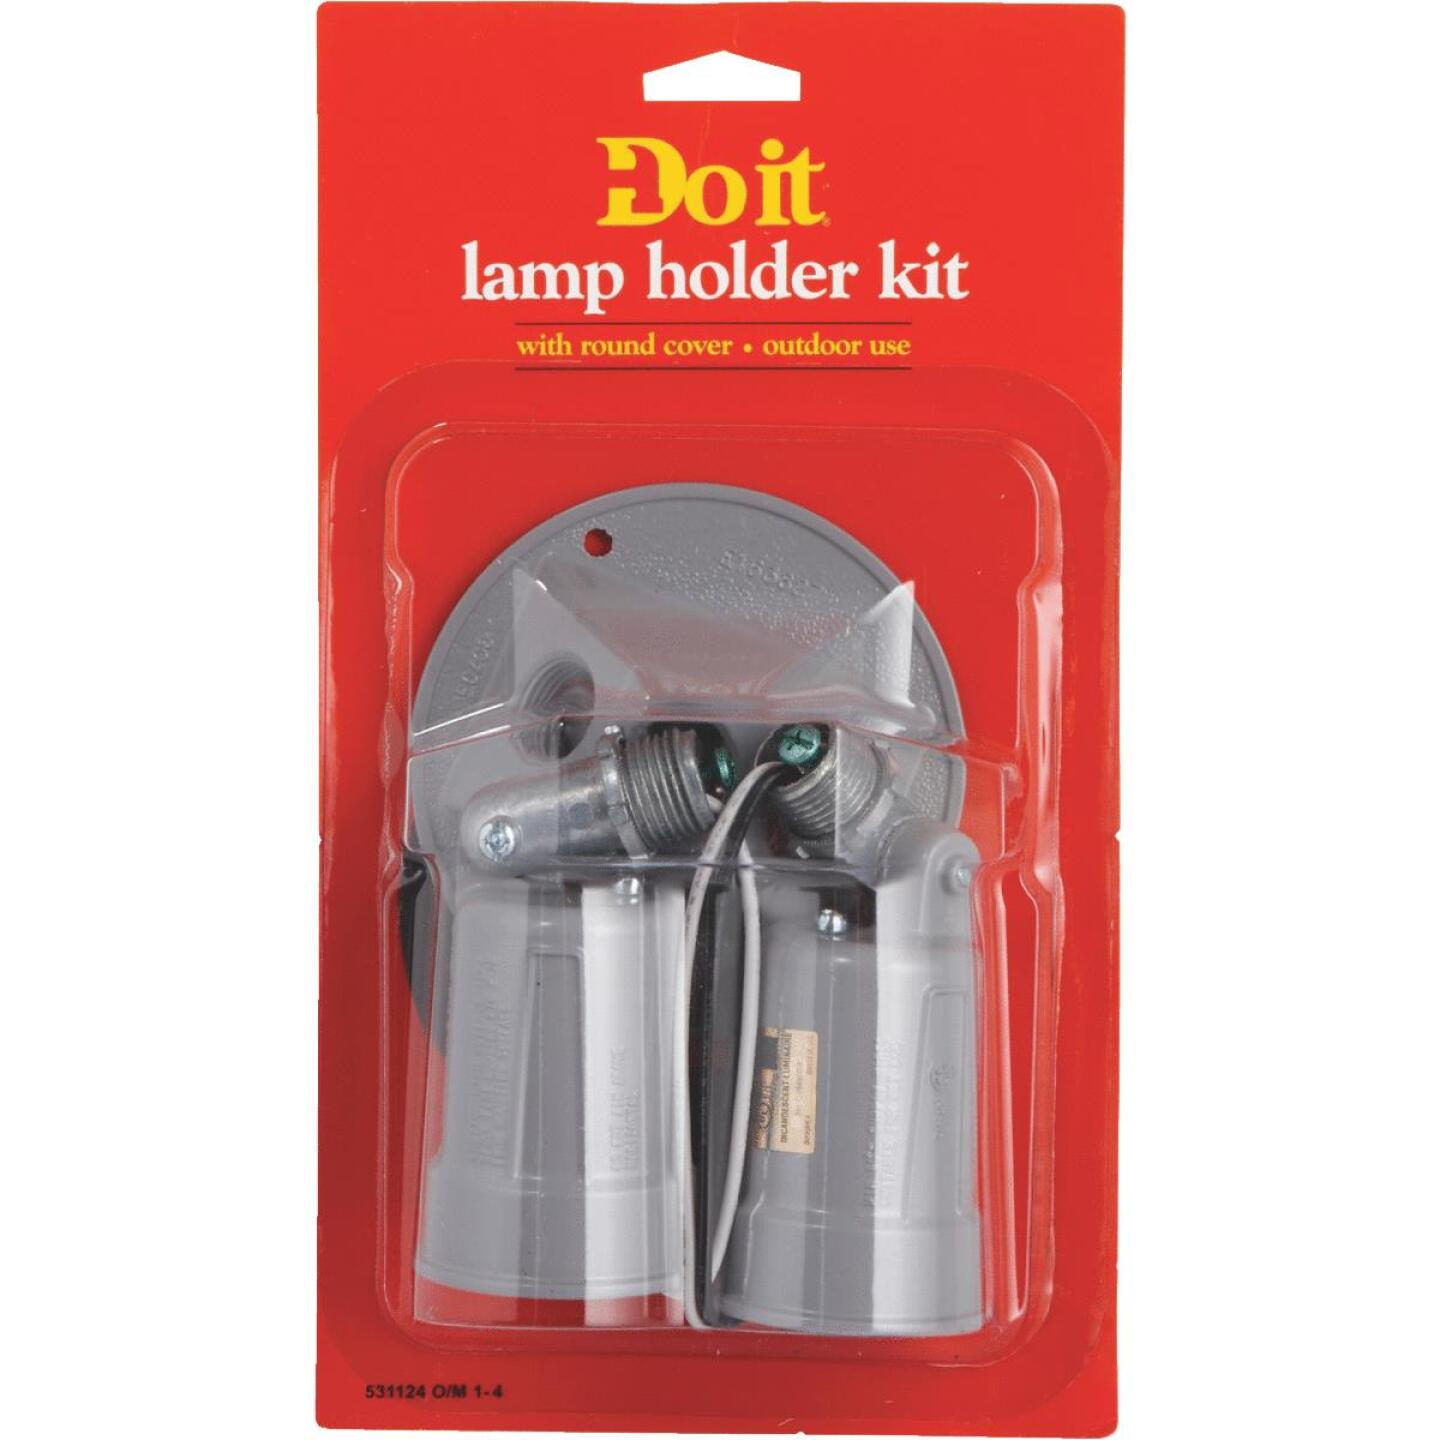 Bell 150W Aluminum Round Double Gray Weatherproof Outdoor Lampholder with Cover, Carded Image 3